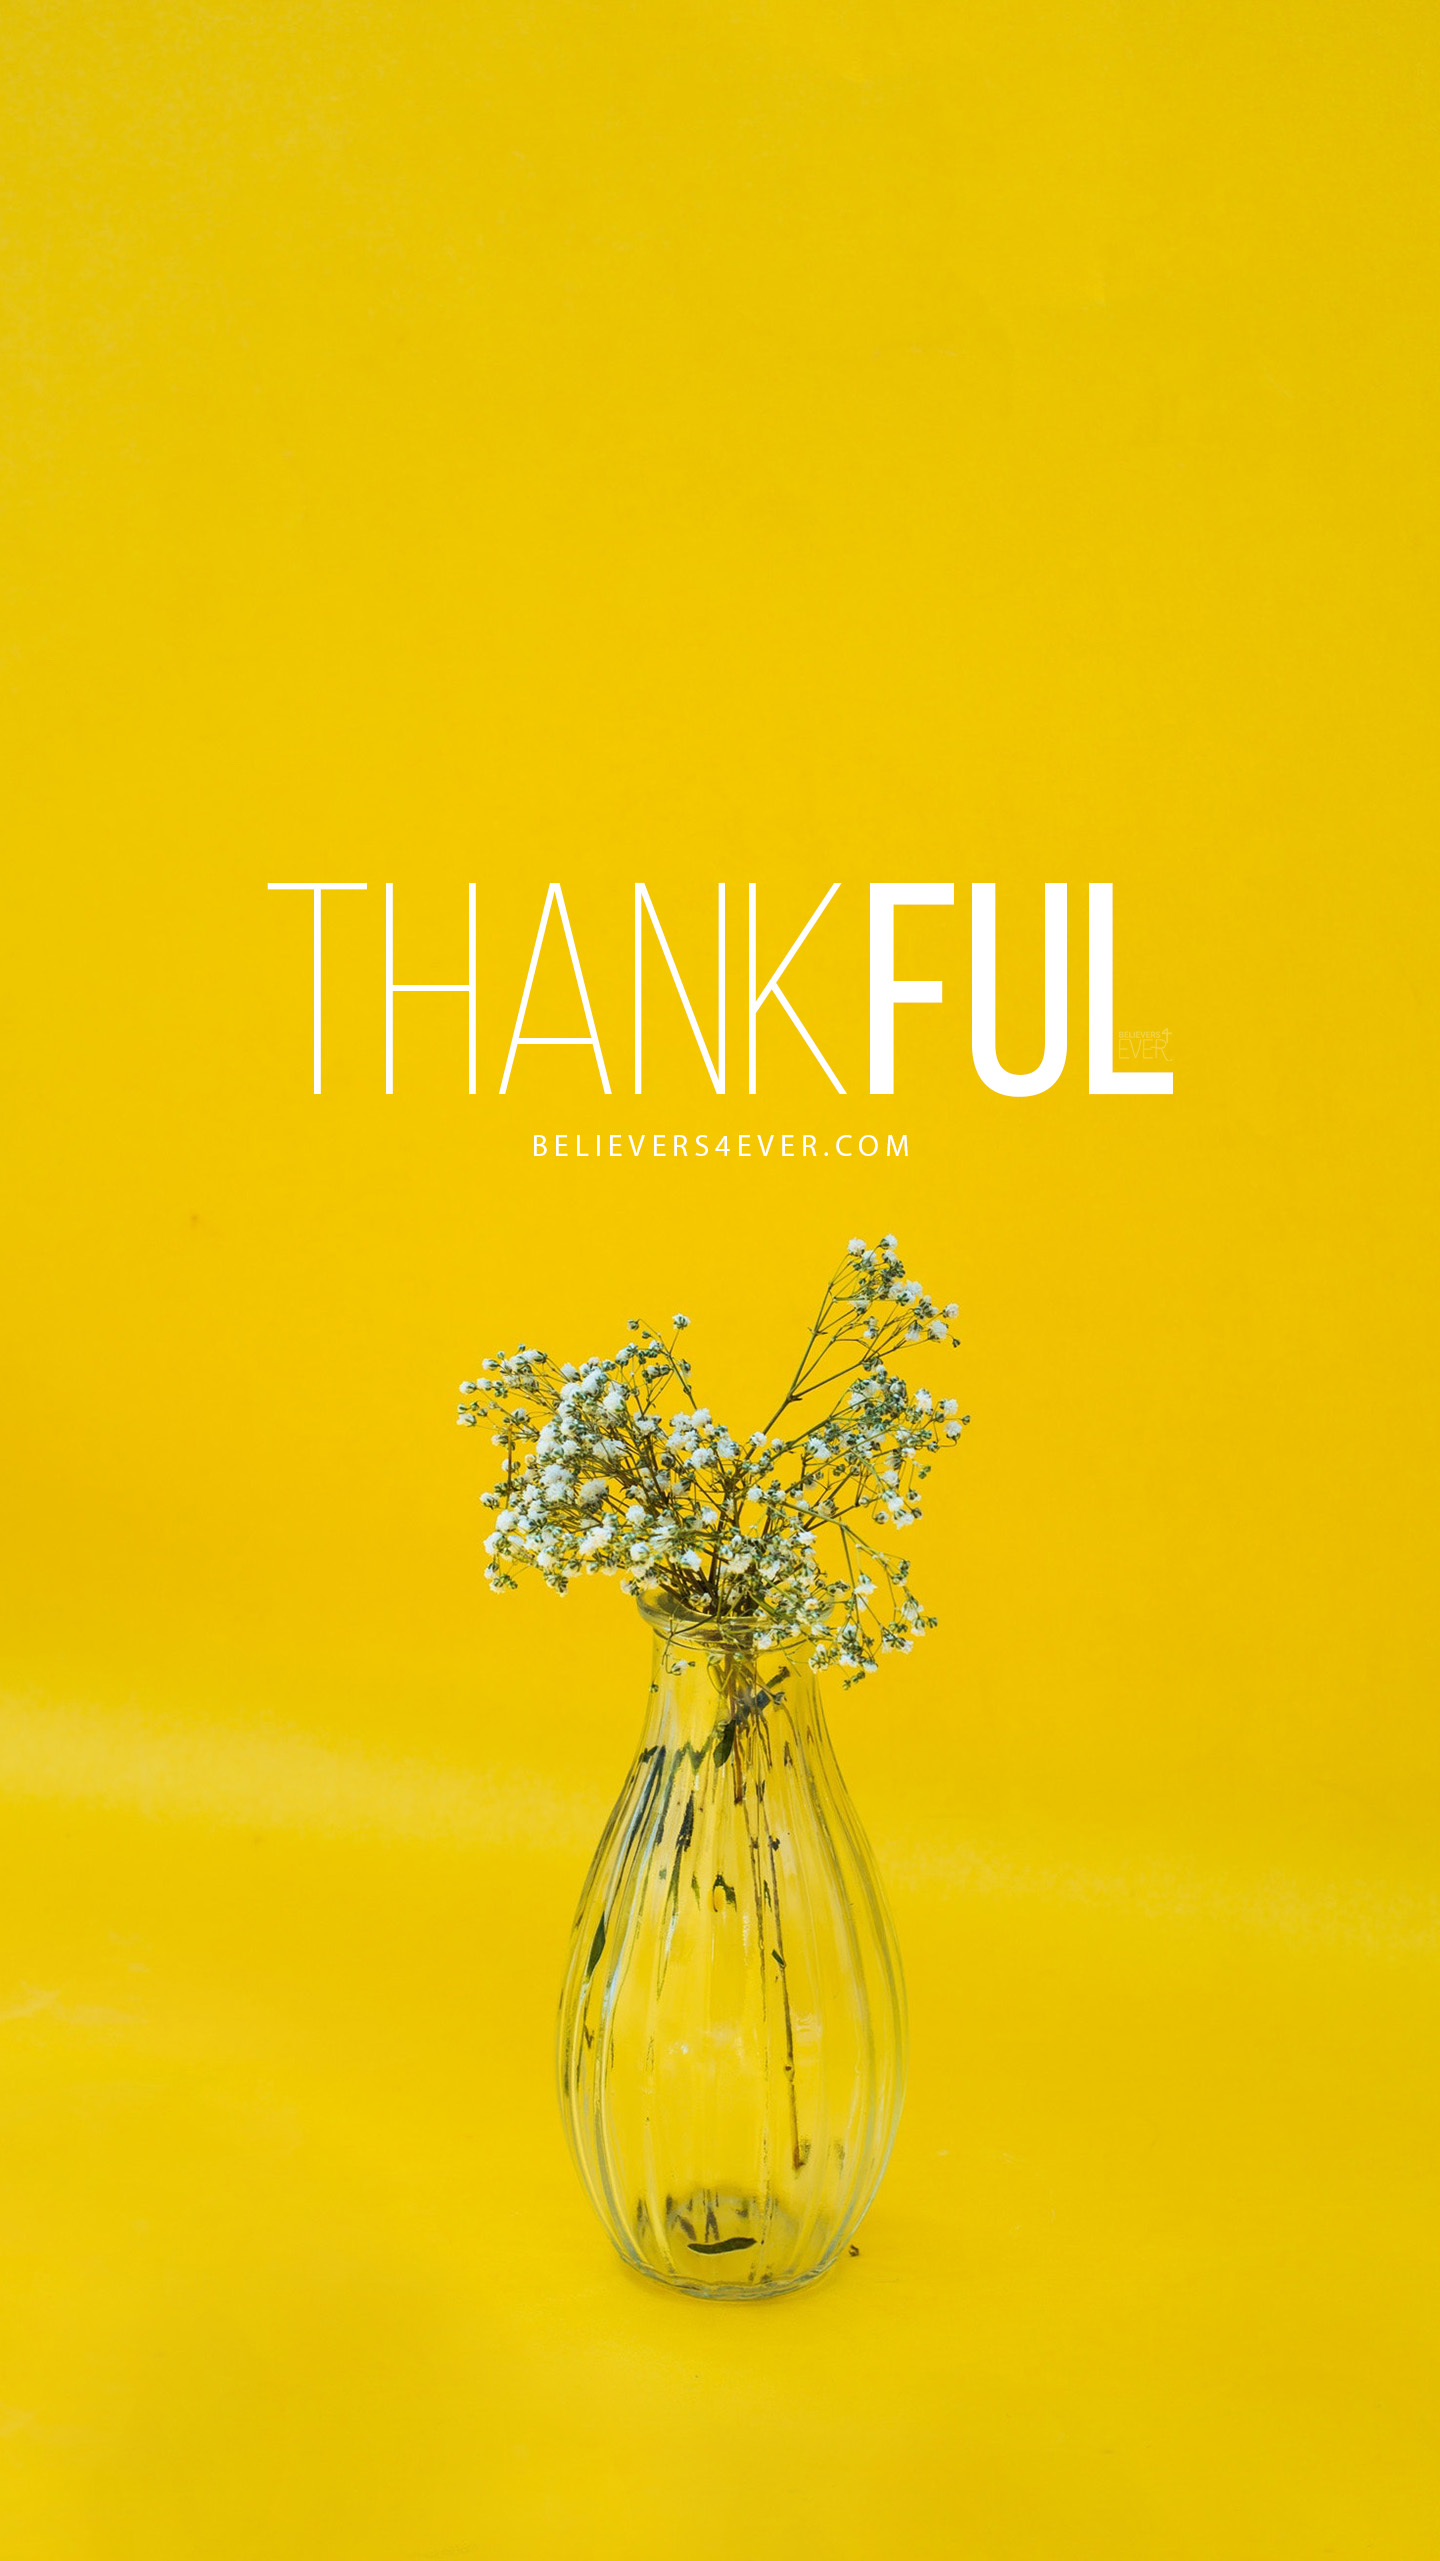 Thankful mobile wallpaper